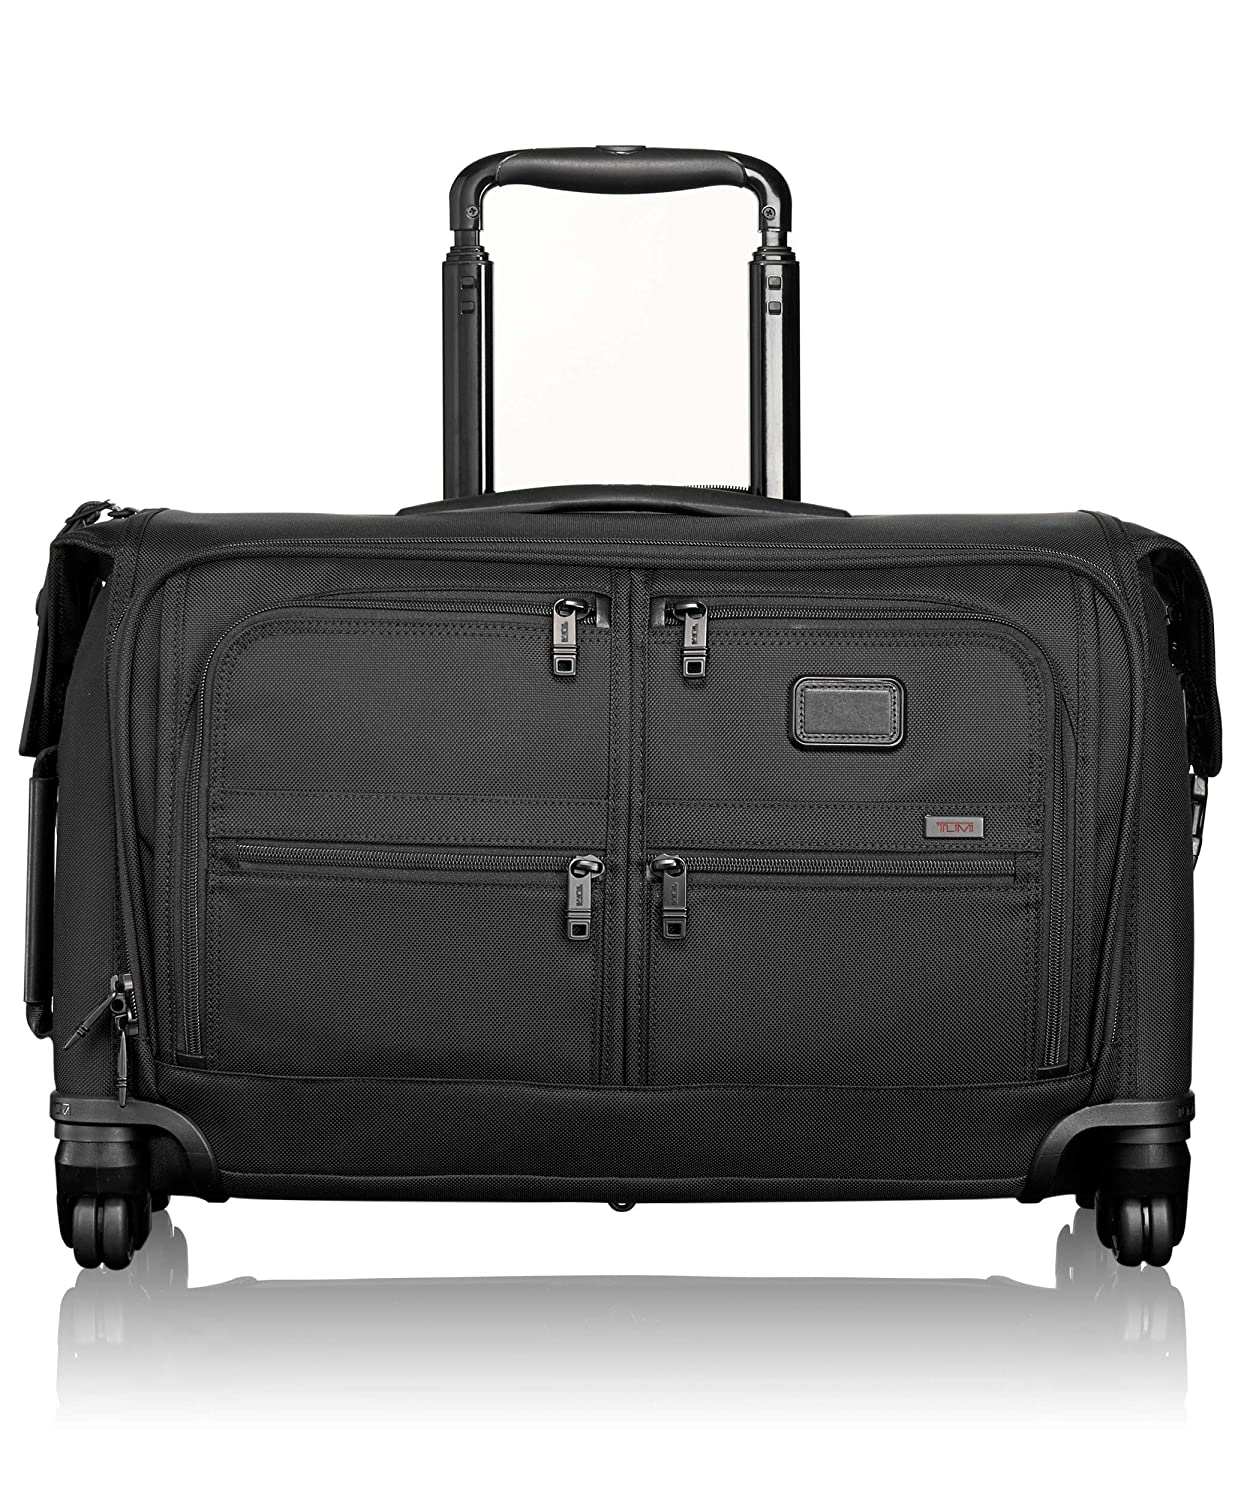 3ba3e29cd0 Tumi Alpha 2 Carry-On 4 Wheel Garment Bag